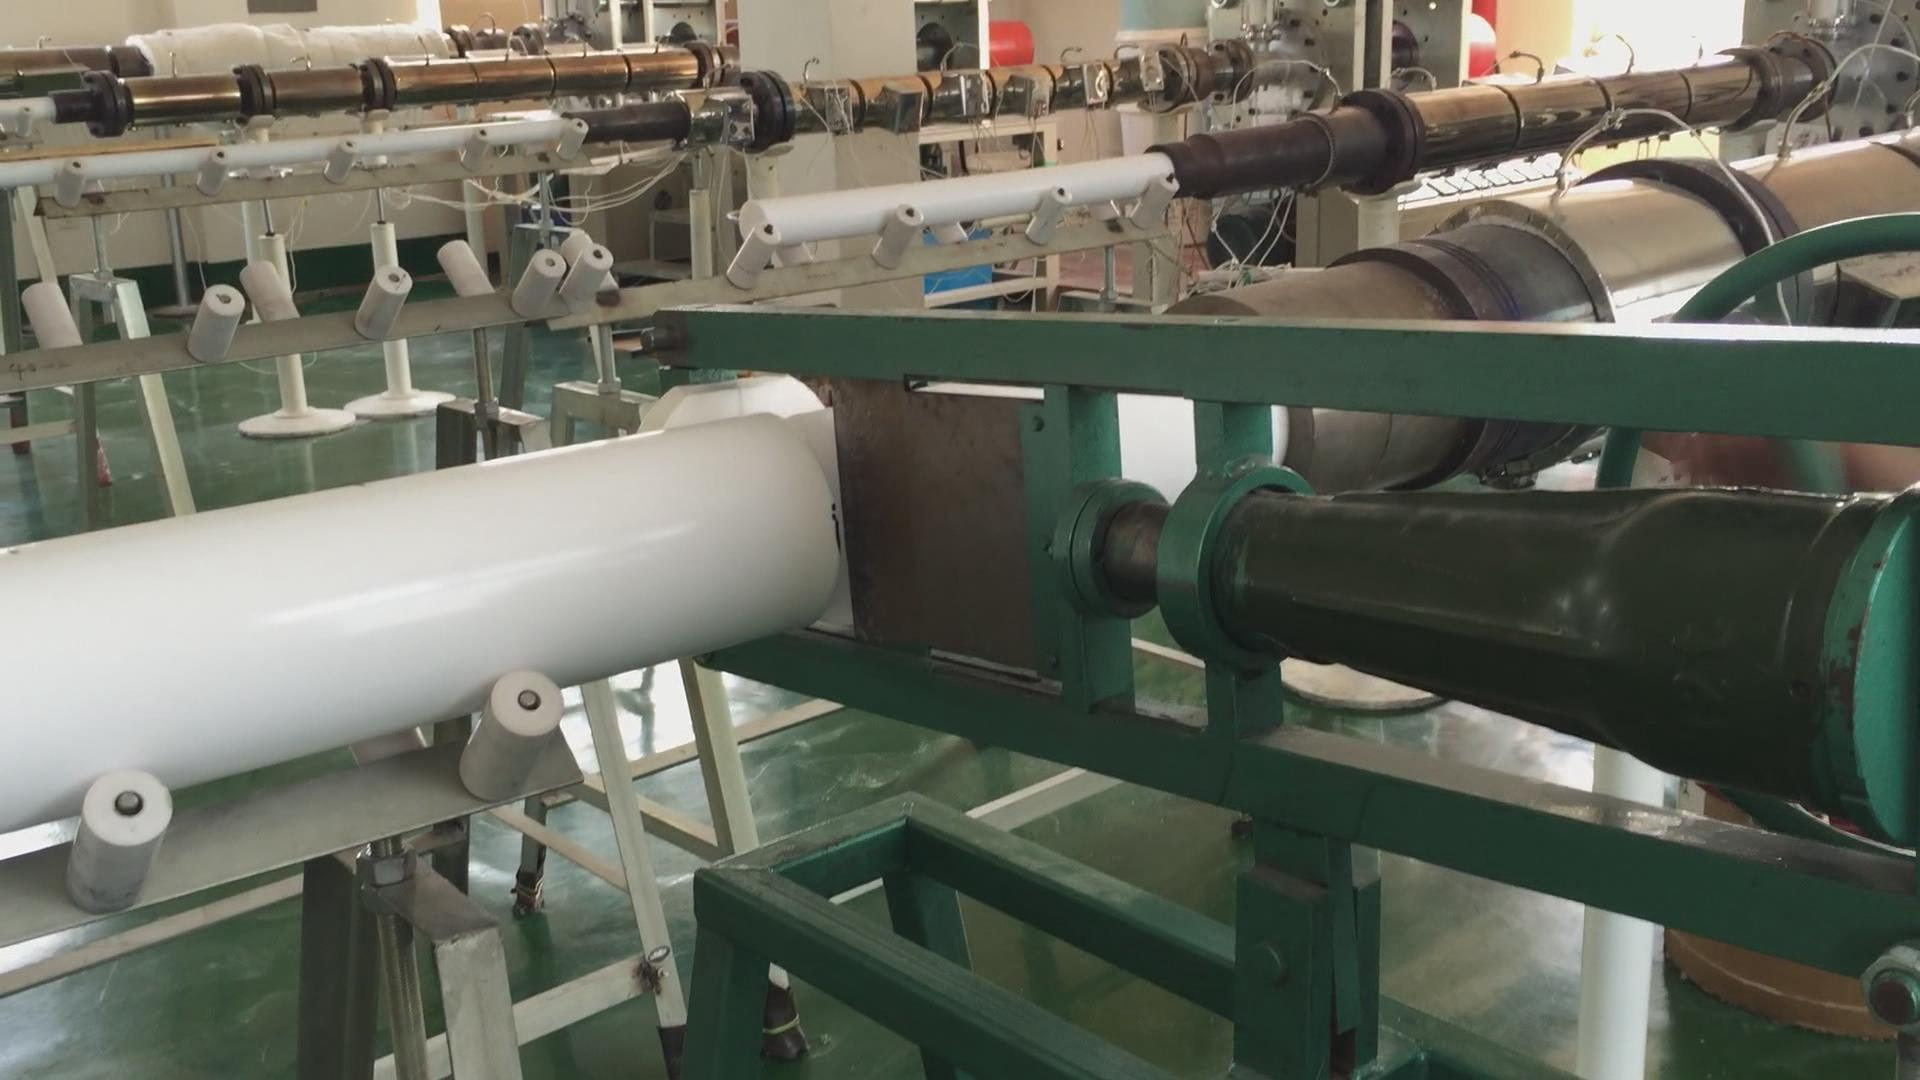 PTFE Rod Sawing Device or PTFE Rod Cutting Machine